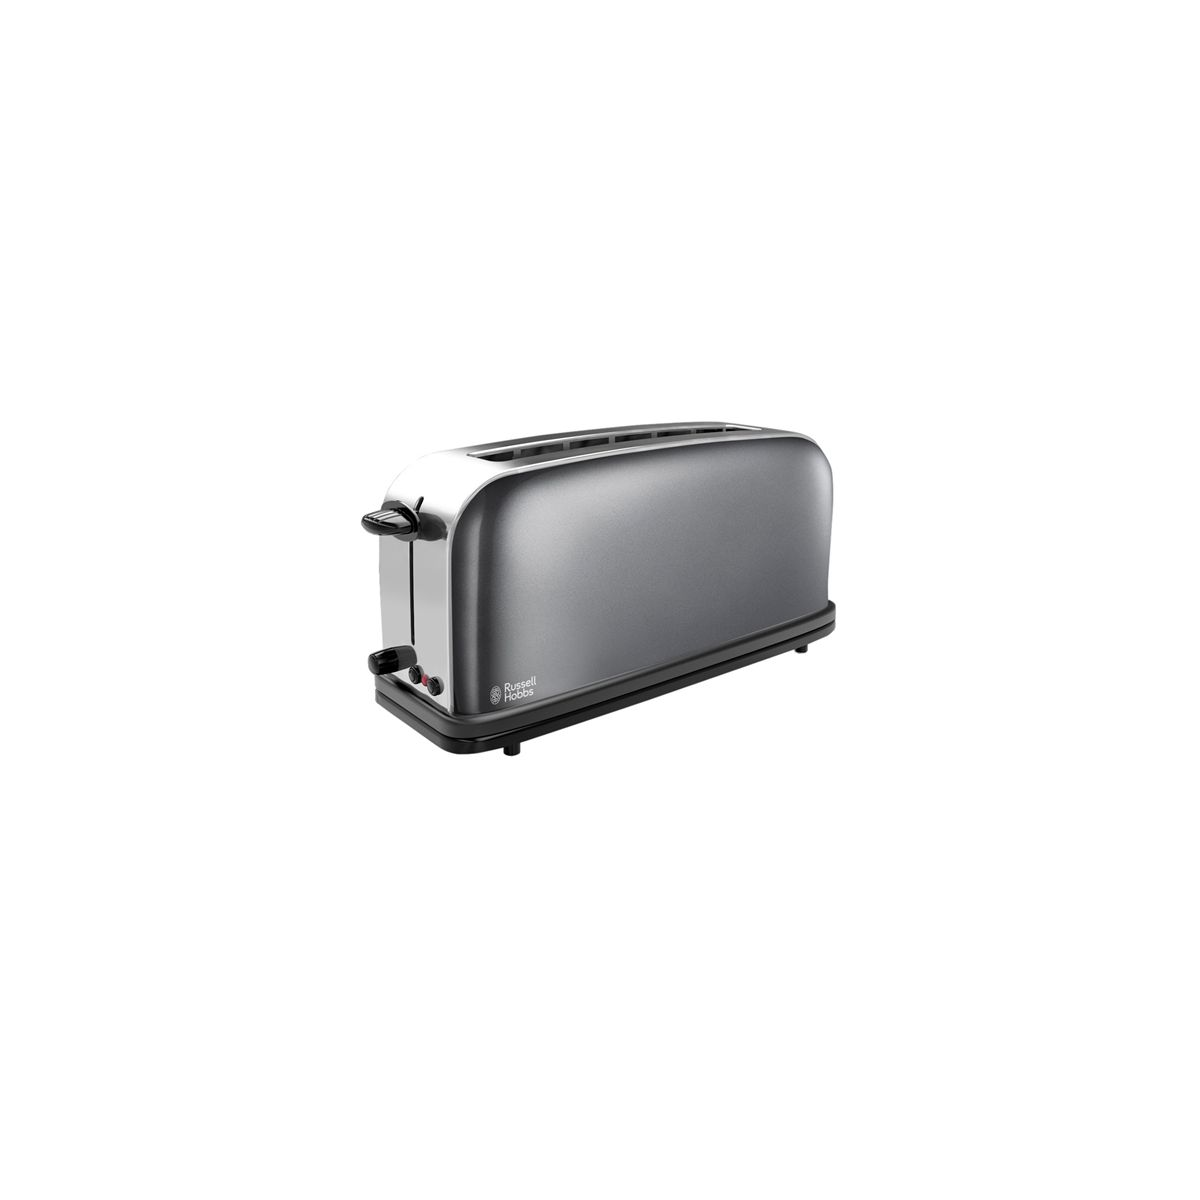 Grille pain RUSSELL HOBBS GRIS ORAGE 21392-56